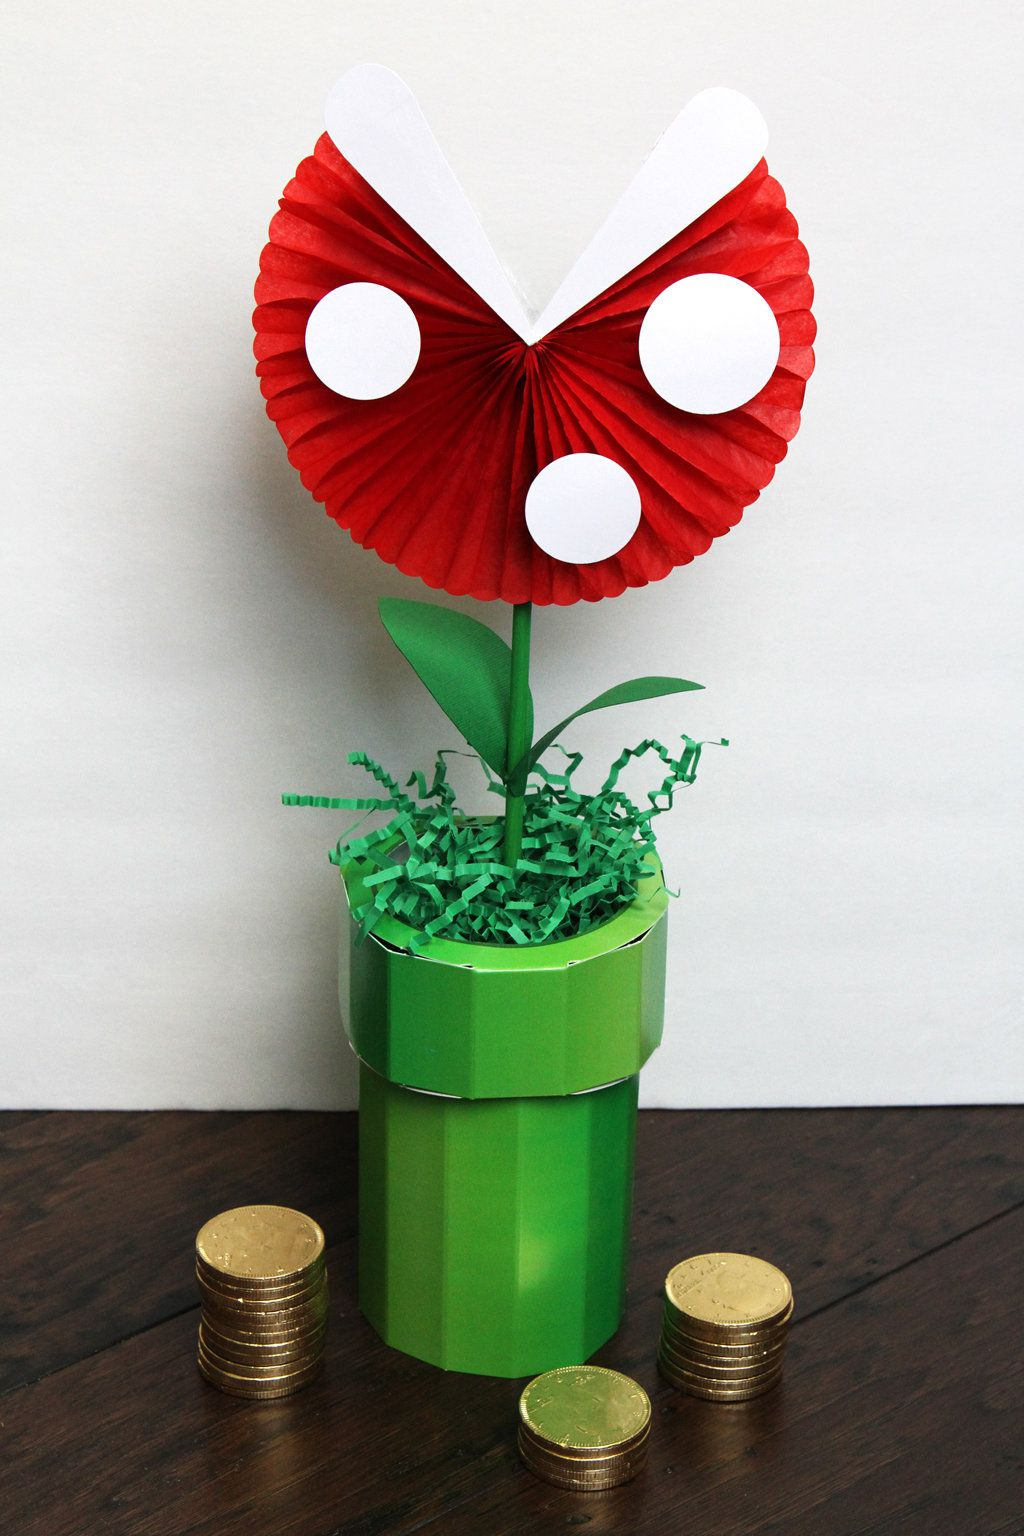 DIY Piranha Plant Decoration